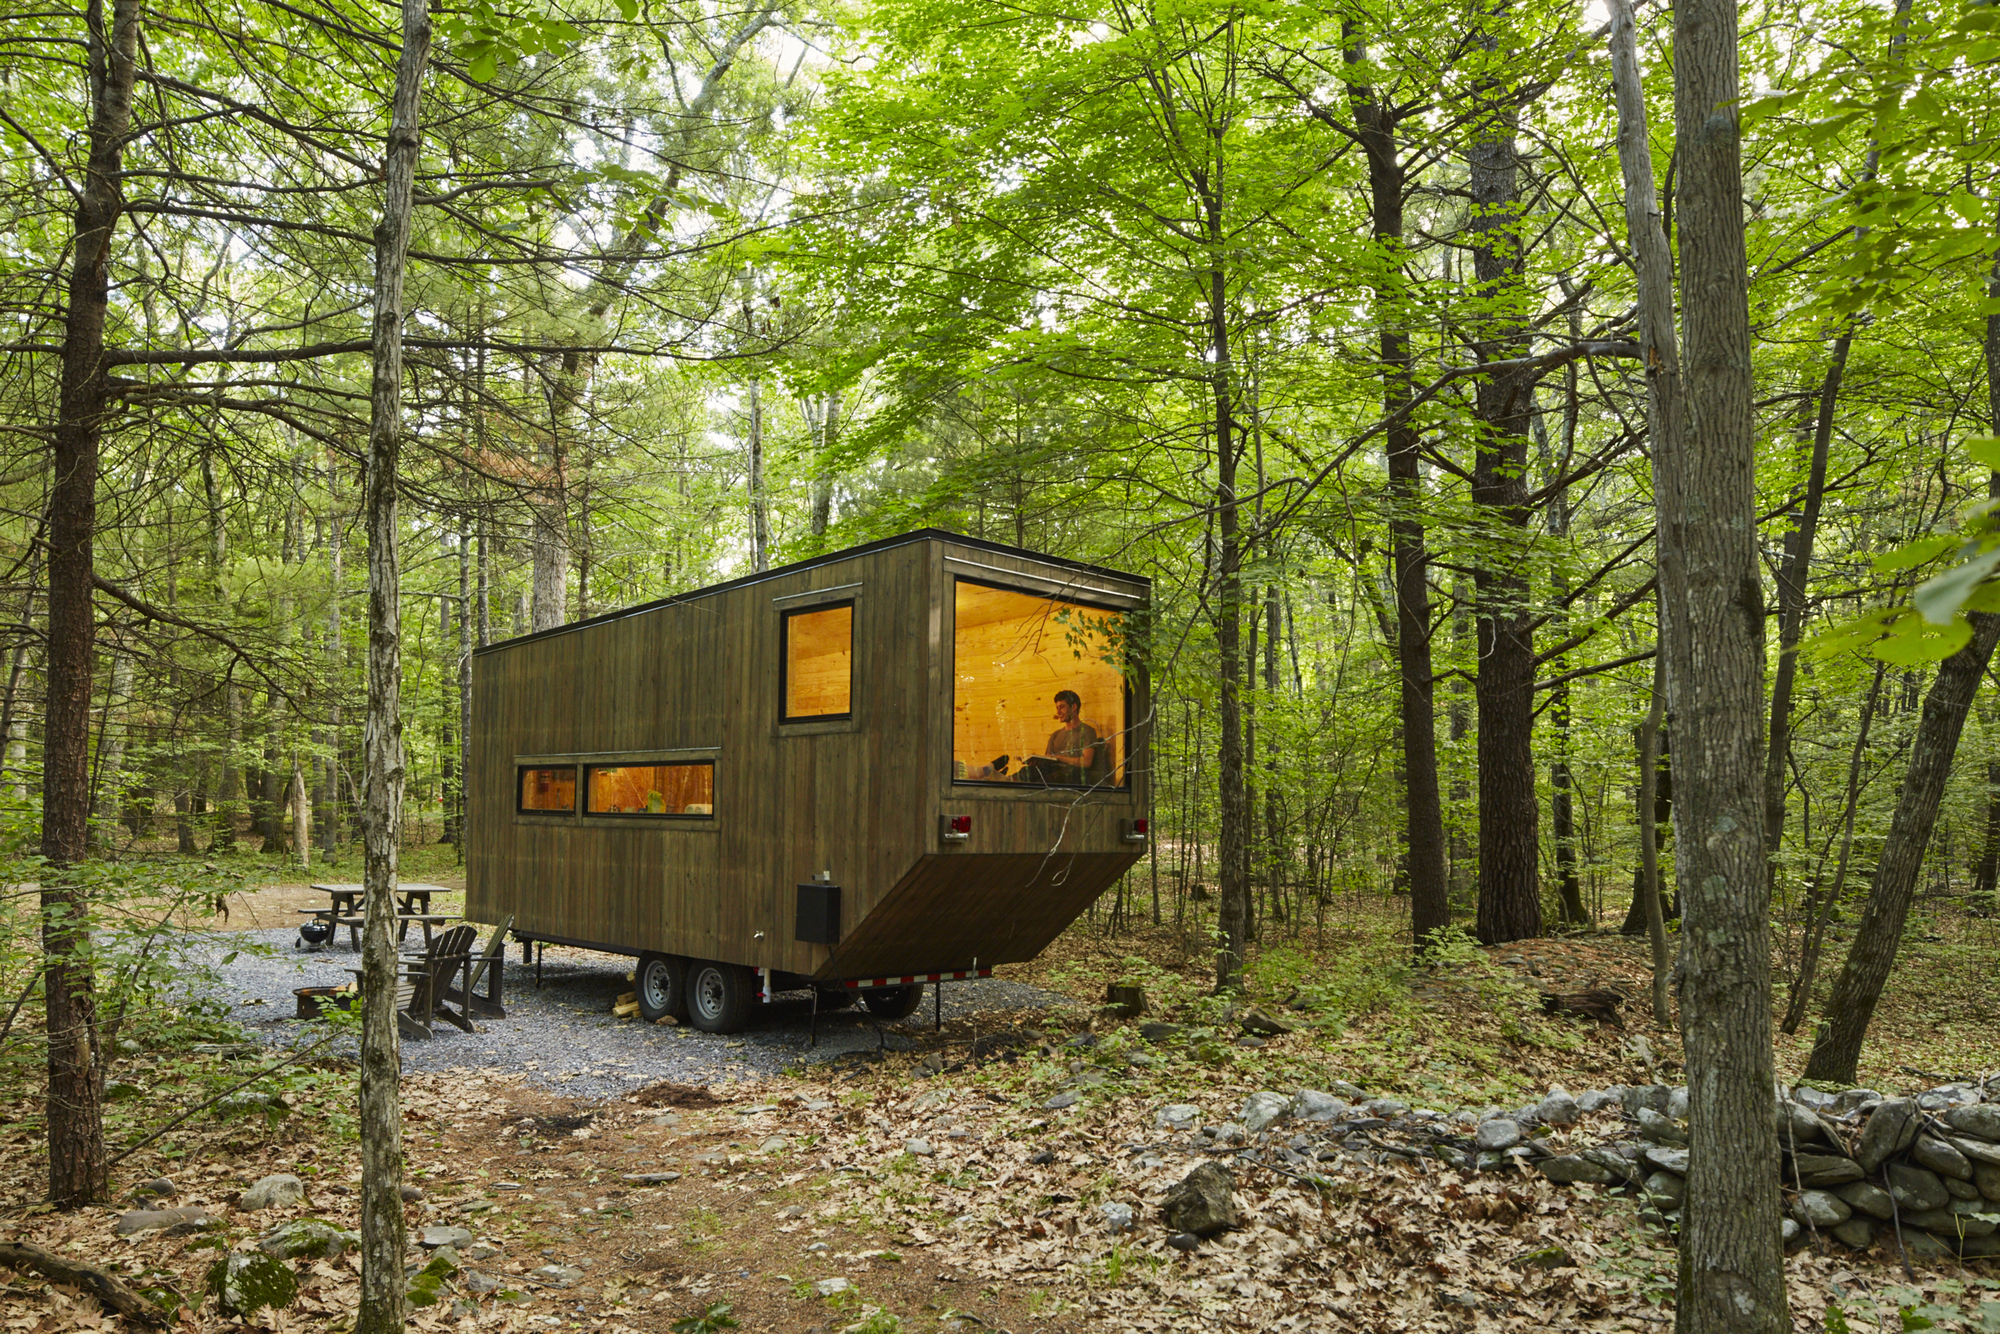 A Tiny Luxury: What Are U201cTiny Housesu201d Really Saying About Architecture?,